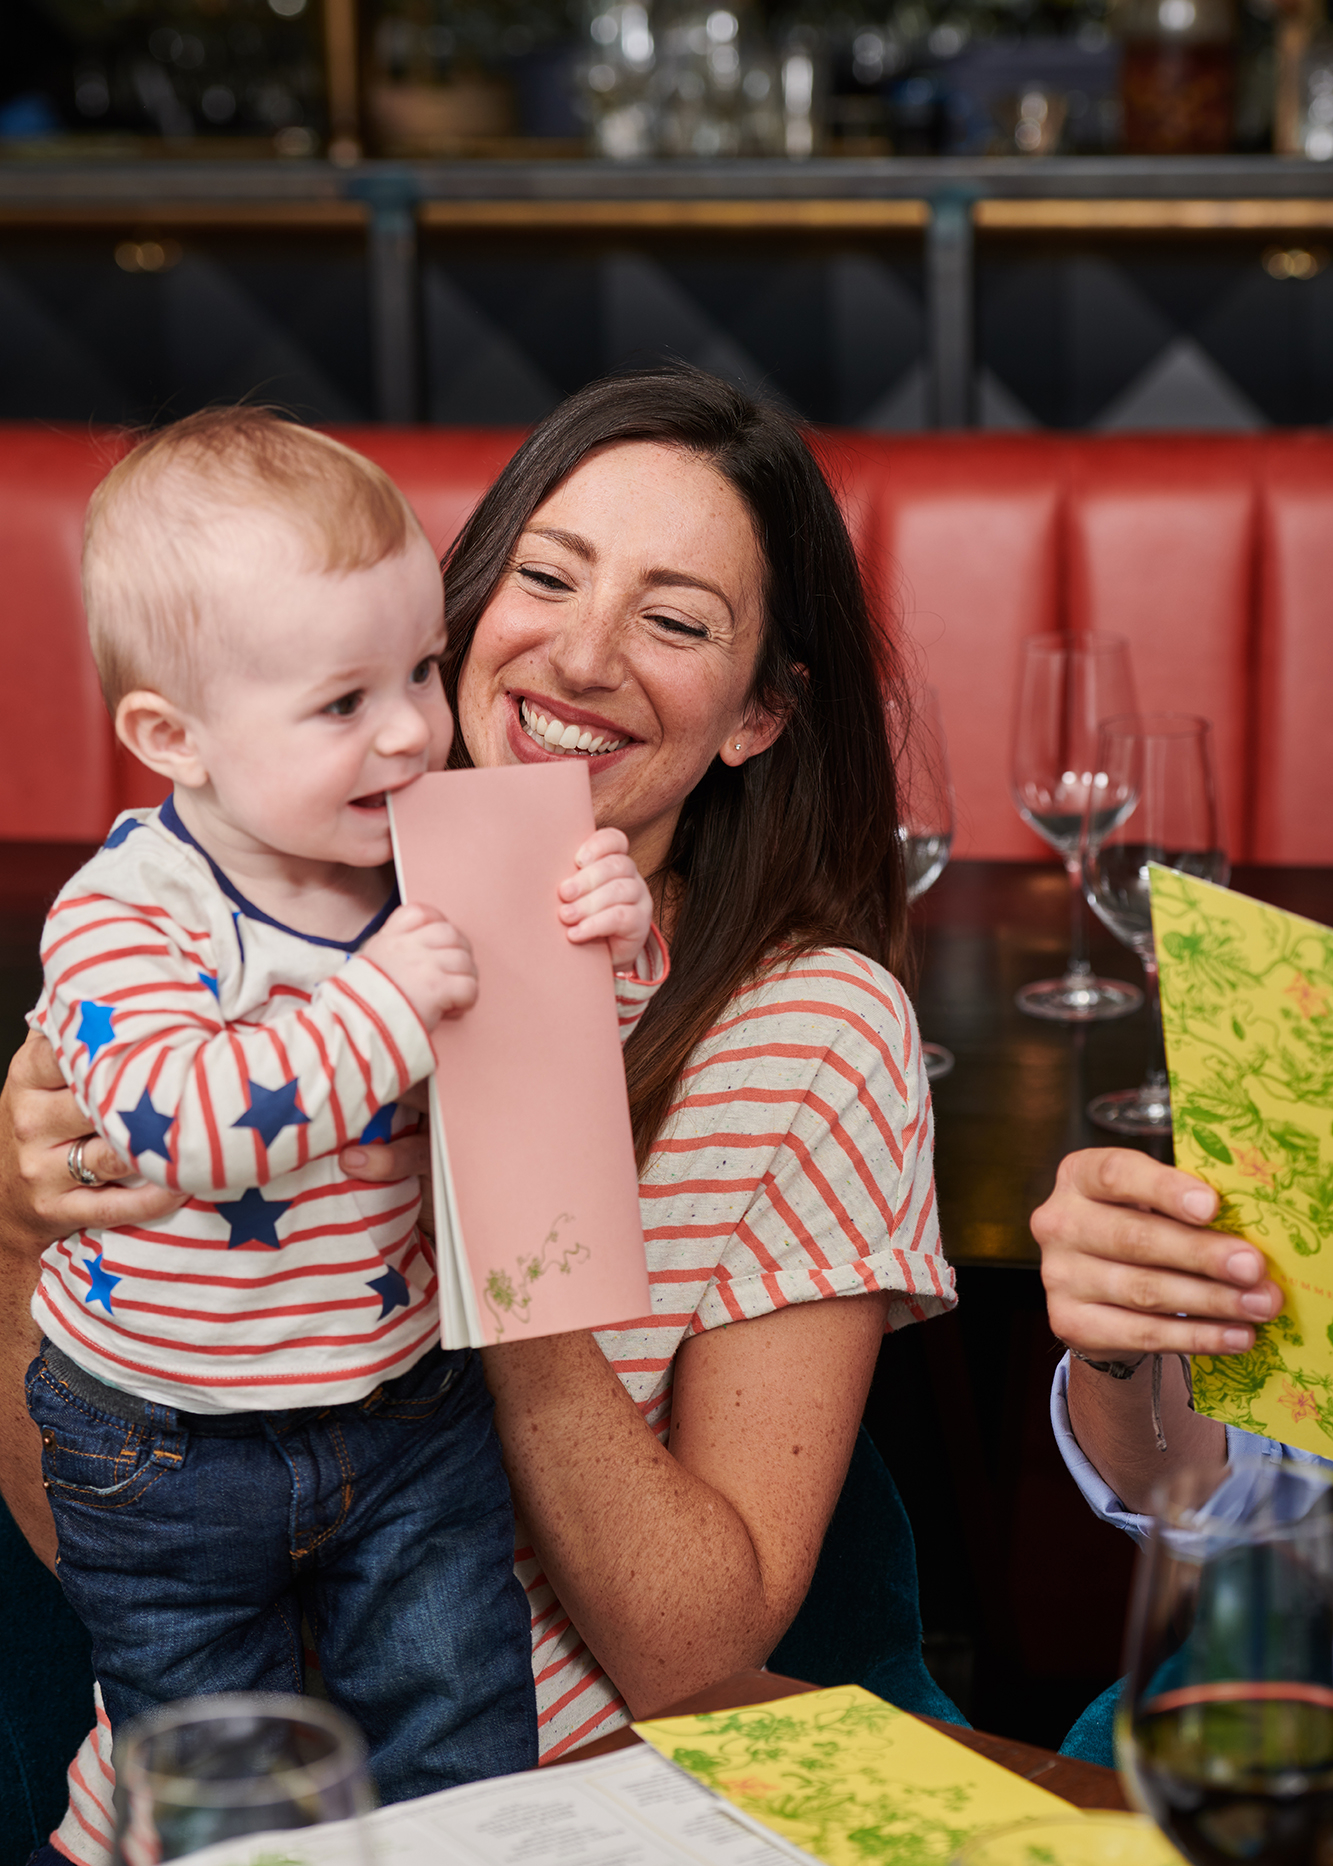 lifestyle photography of a woman and baby in a restaurant